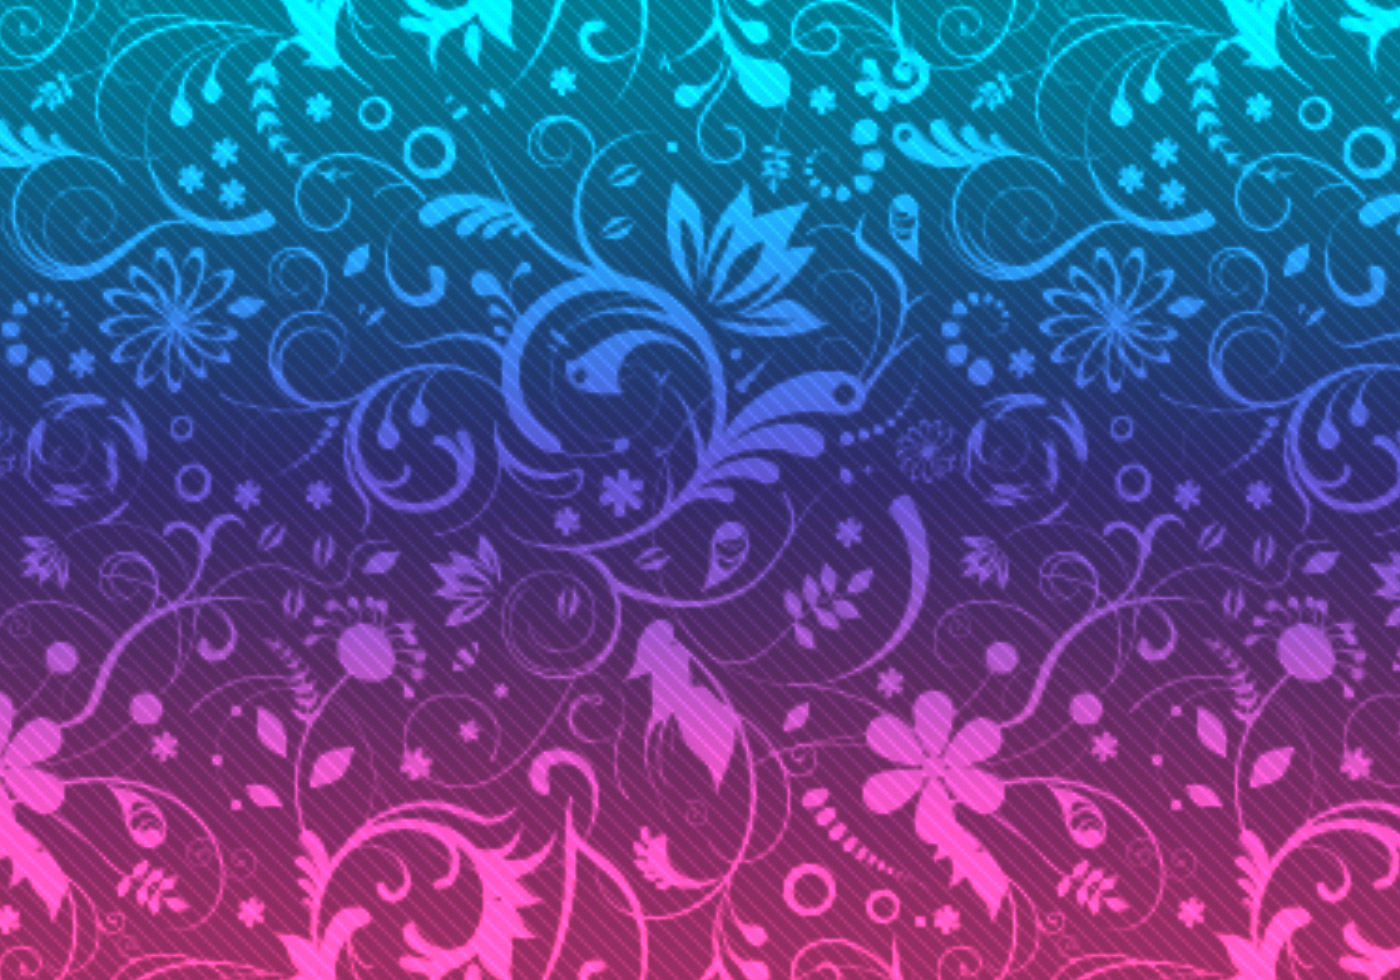 Cute Bordered Pastel Flower Wallpaper Different Pattern Free Photoshop Brushes At Brusheezy